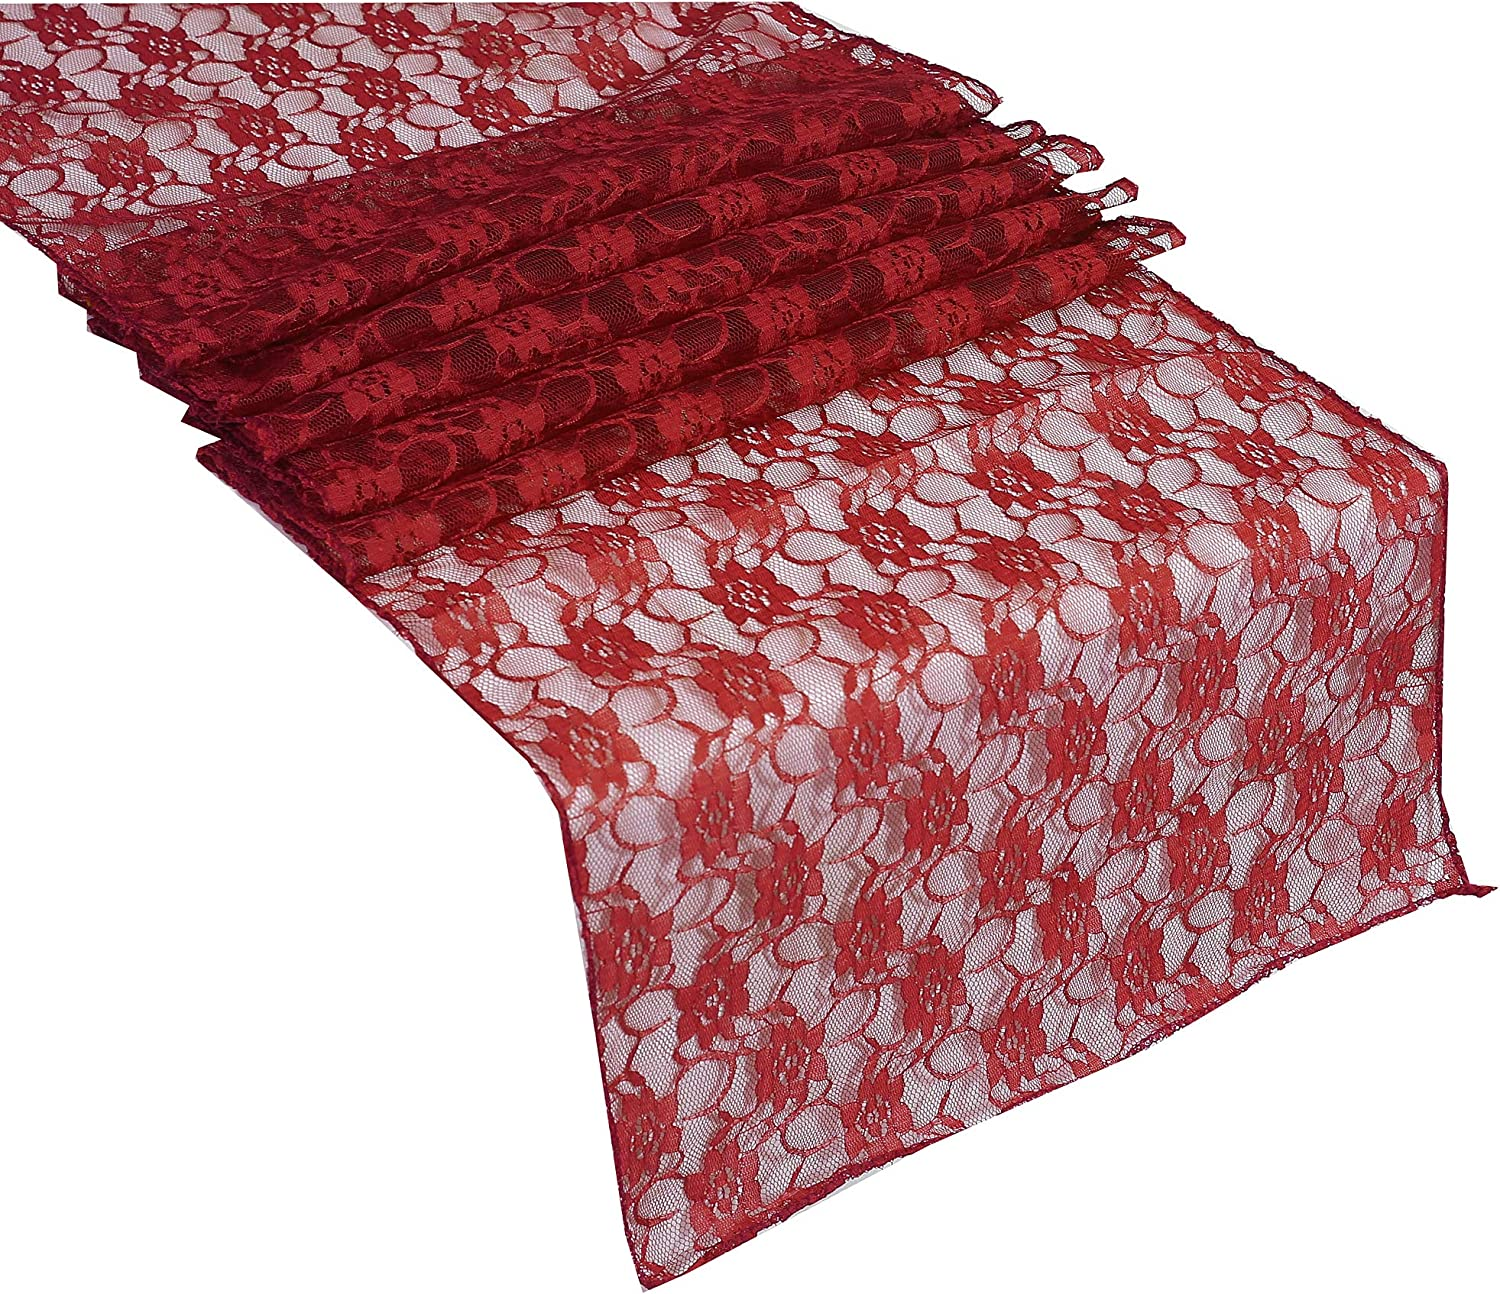 mds Pack of 10 Wedding 12 x 108 inch Lace Table Runner for Wedding Banquet Decor Table Lace Runner- Apple red